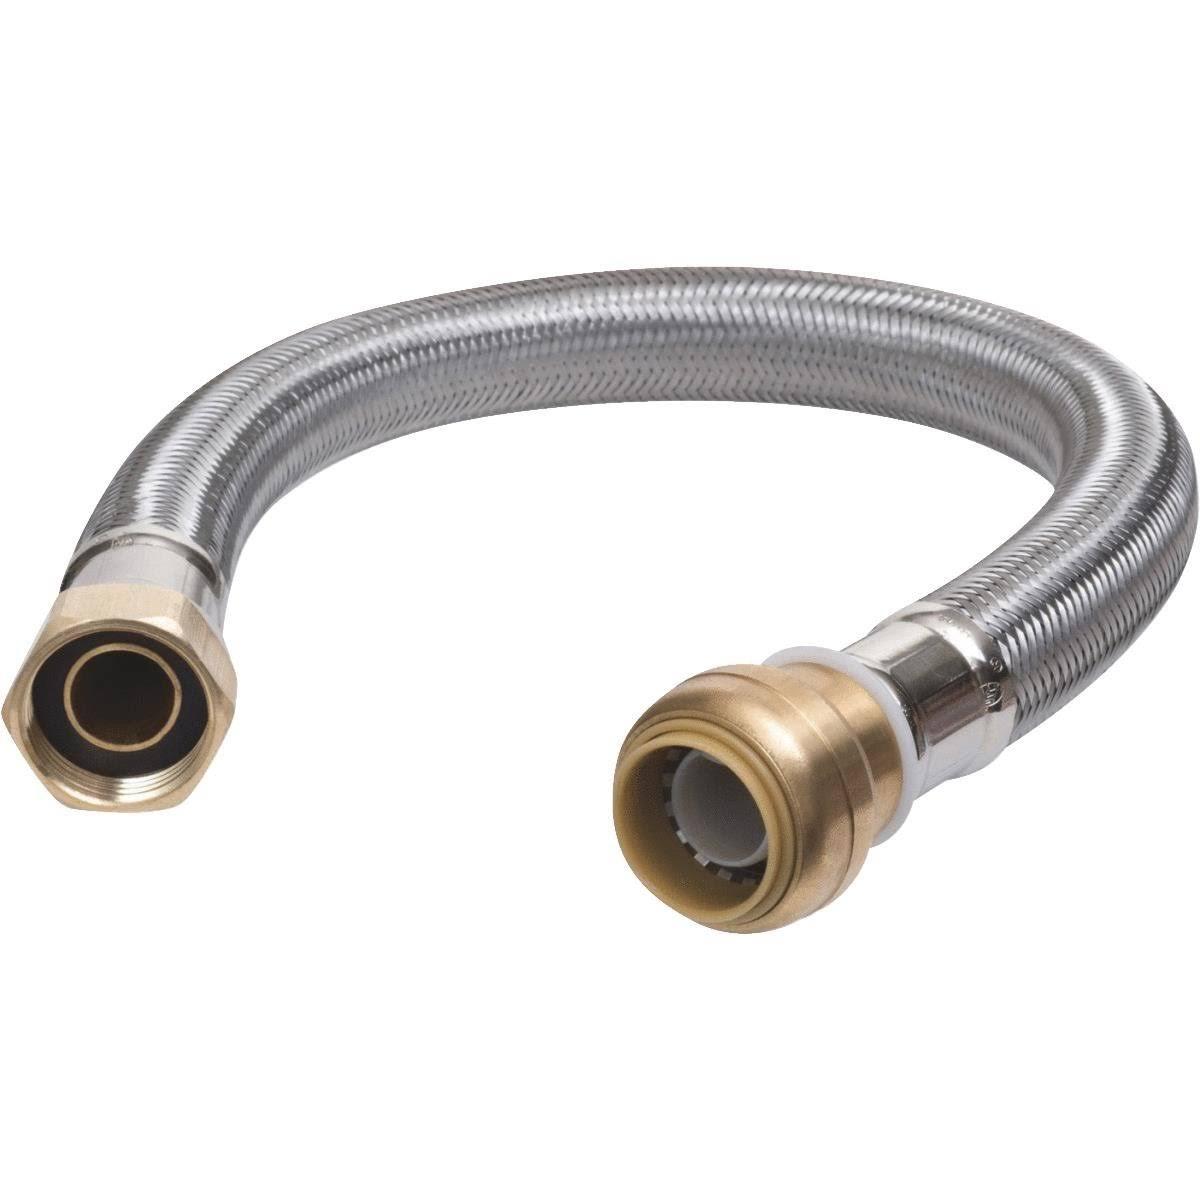 "SharkBite Flexible Water Heater Connectors - 3/4"" x 3/4"" x 24"""